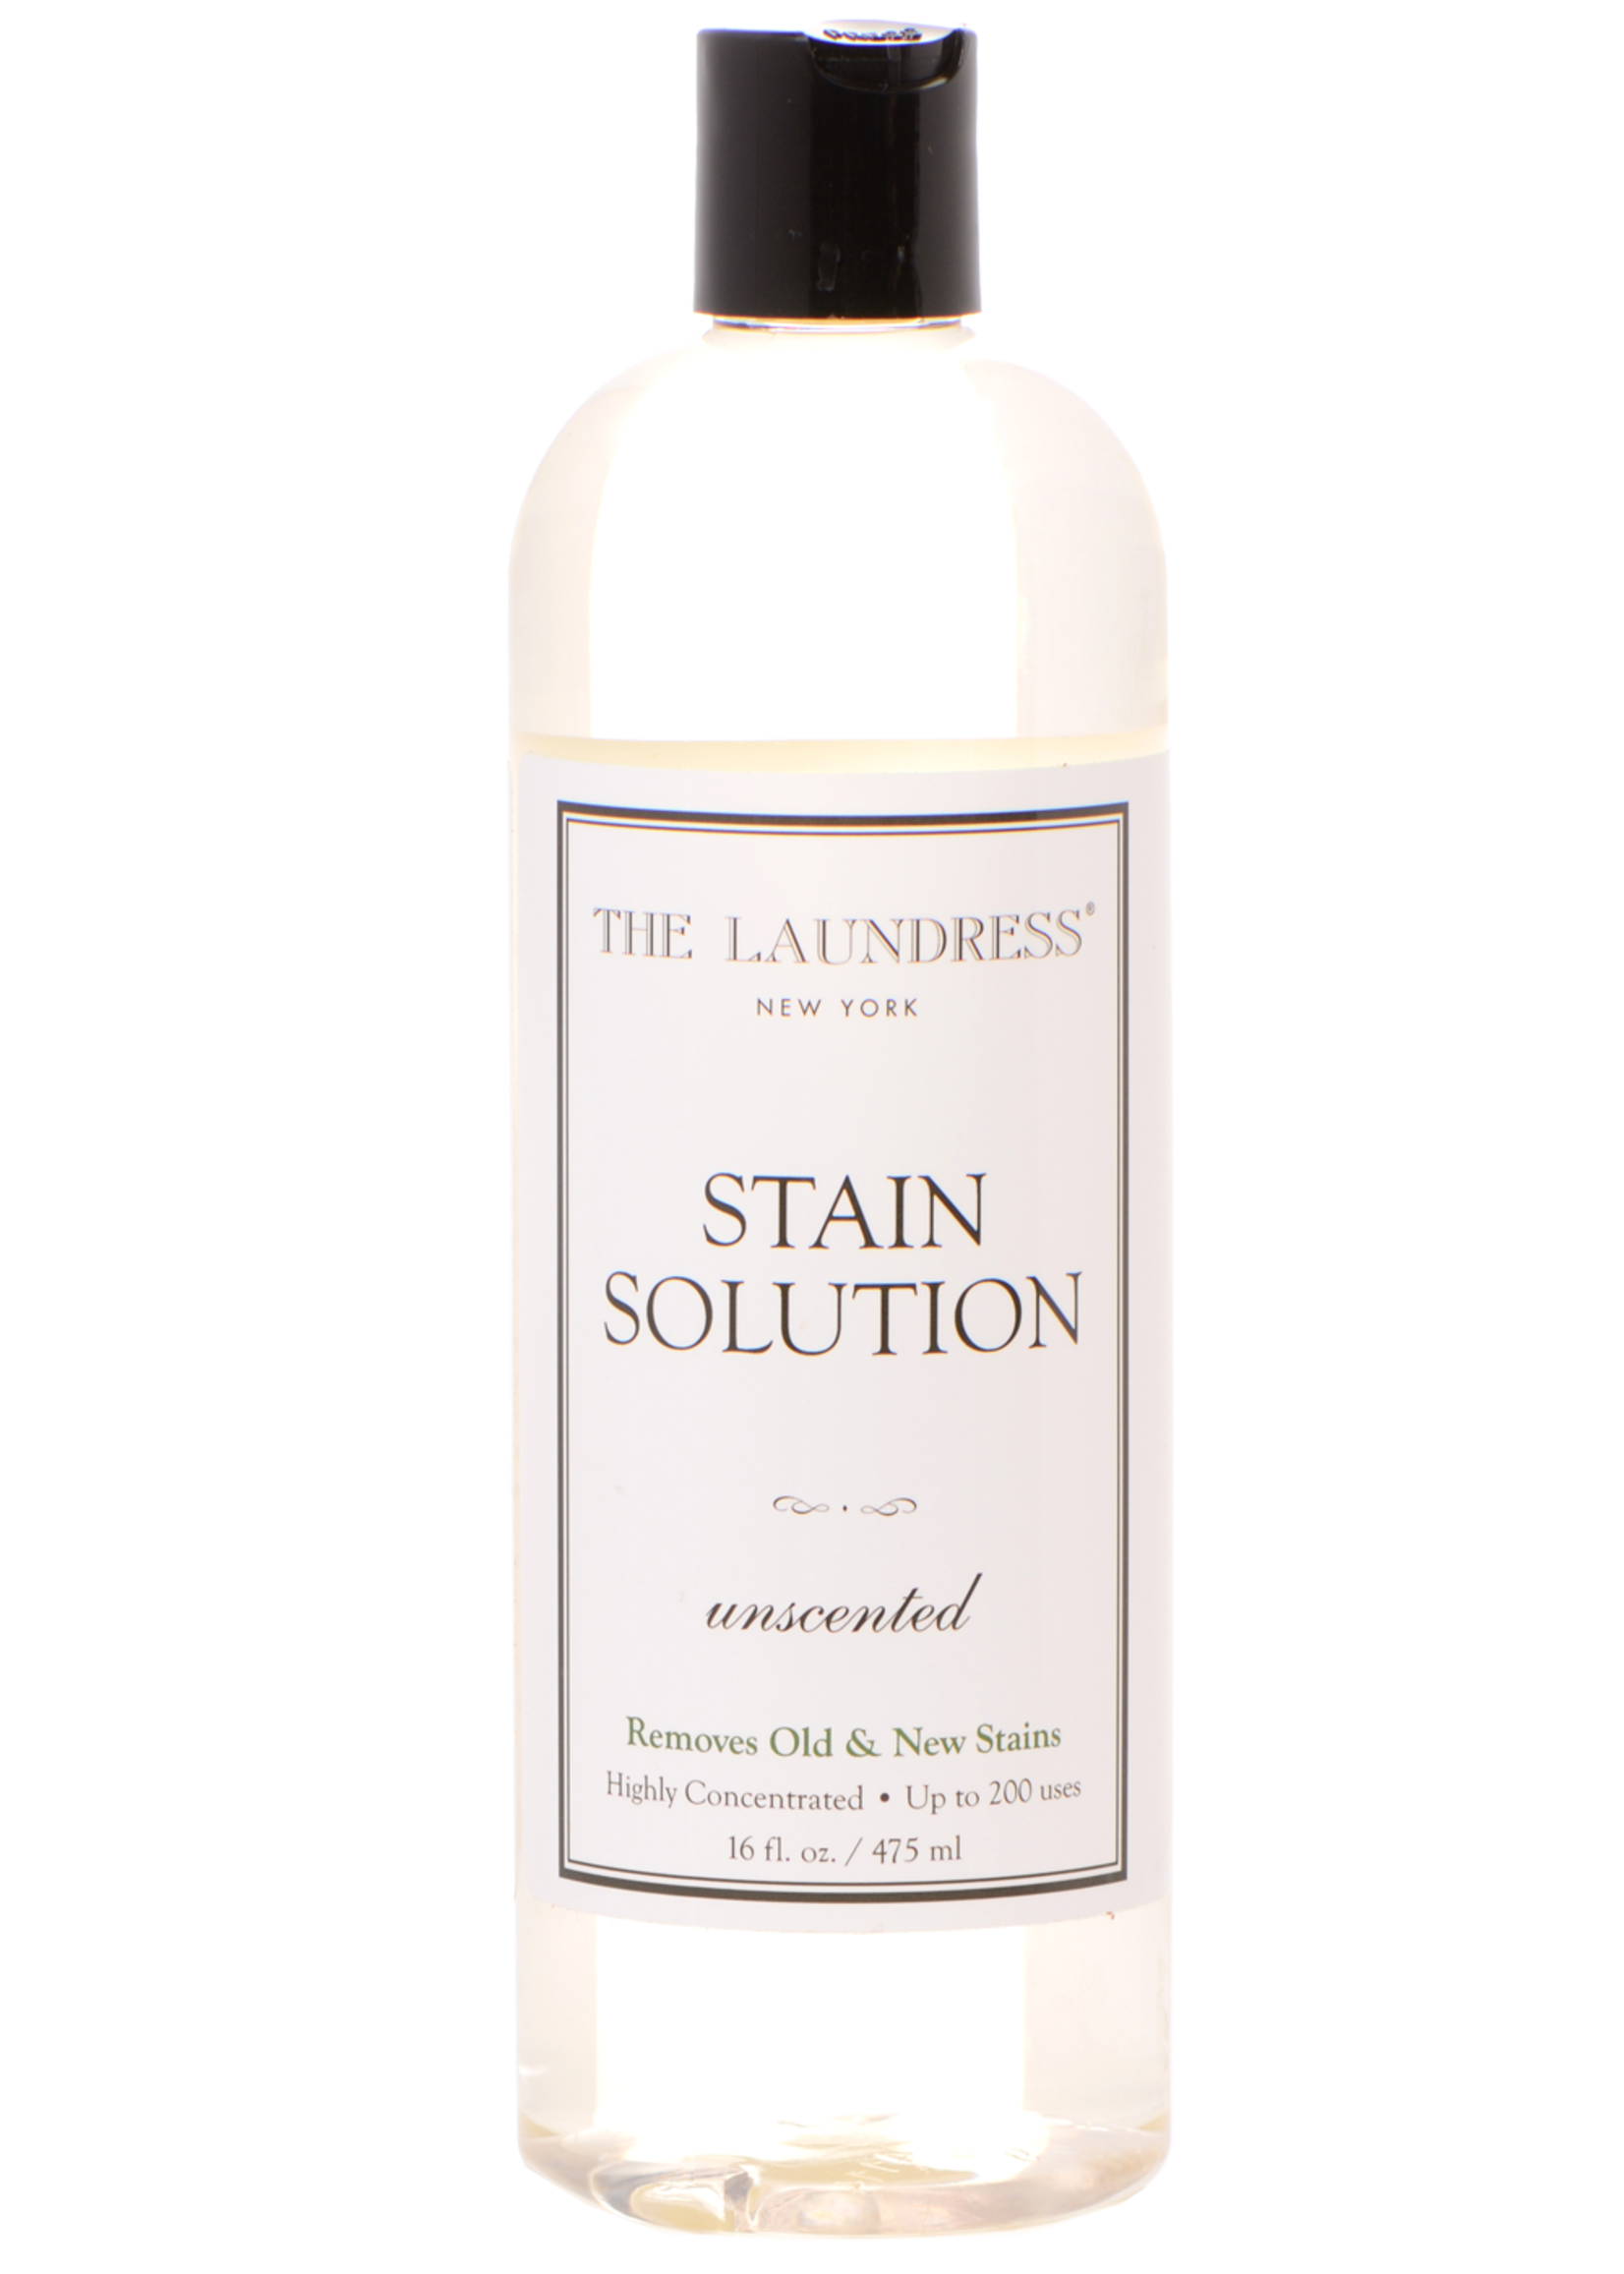 The Laundress New York Stain Solution